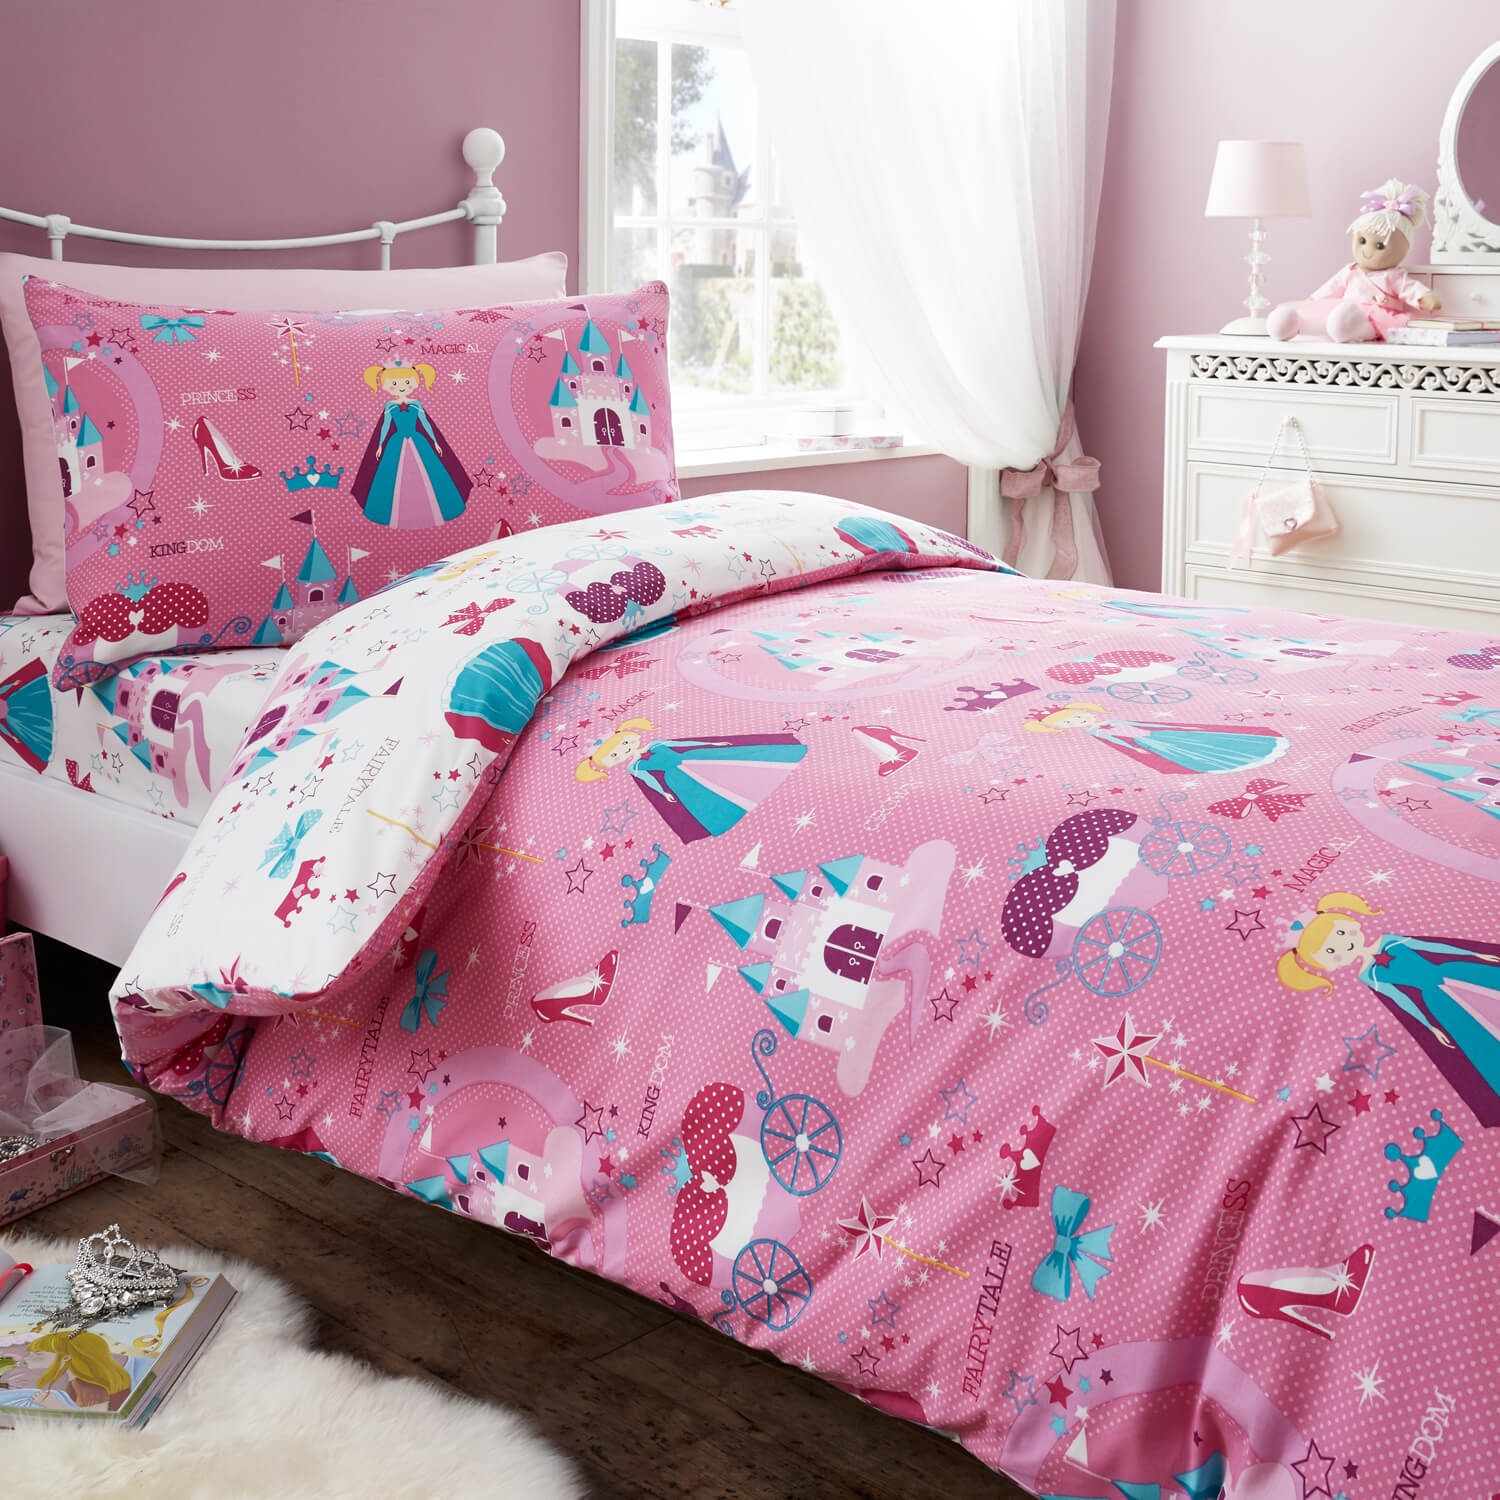 DOUBLE DUVET COVER Princess Magic